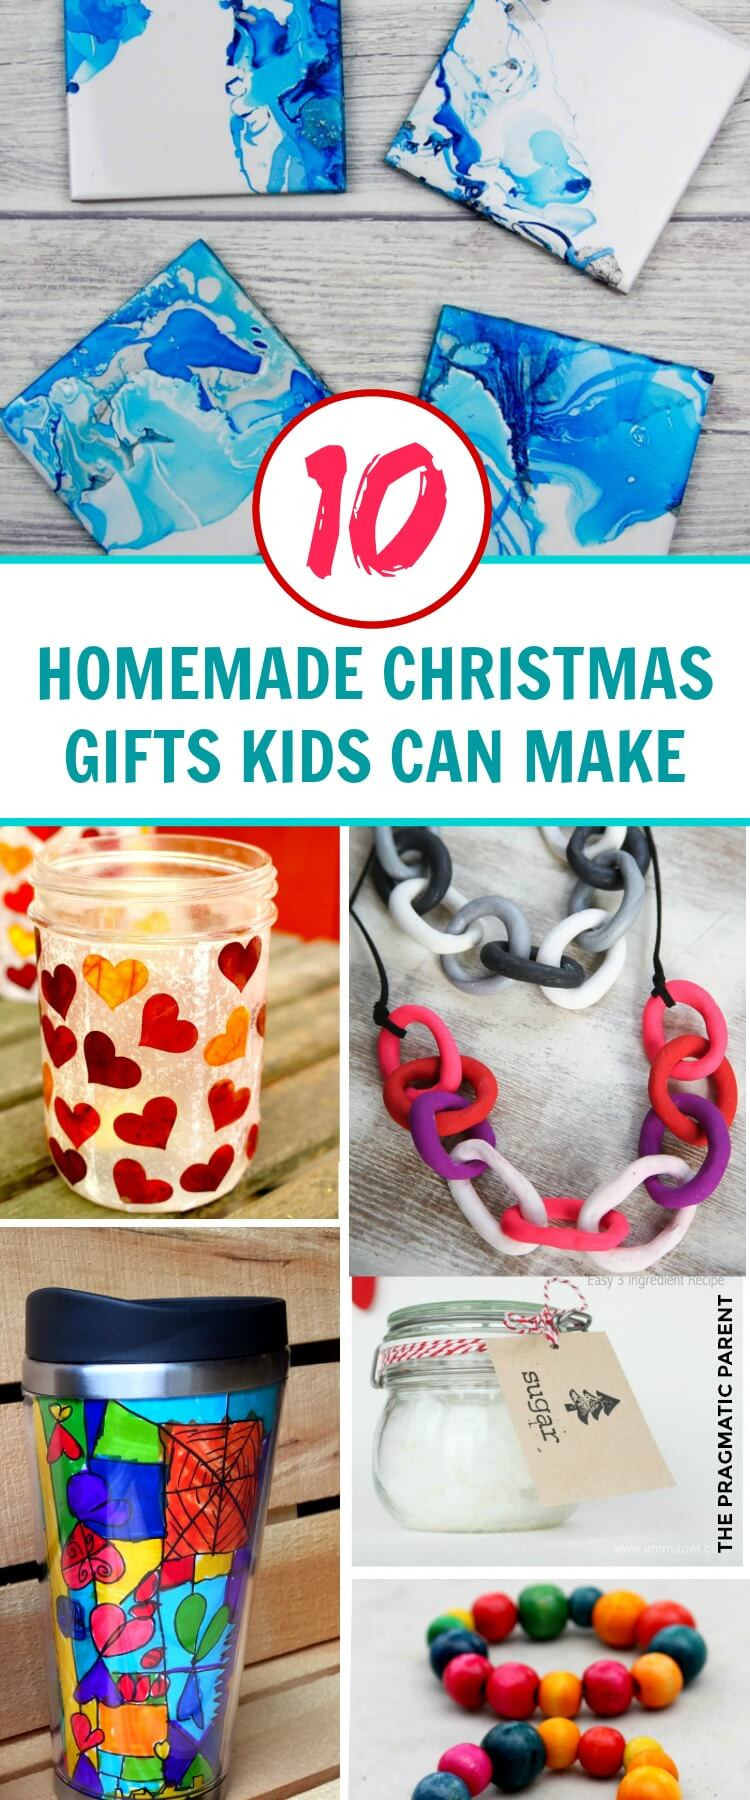 Toddler Made Christmas Gifts  10 Beautiful Homemade Christmas Gifts Kids Can Make This 2020